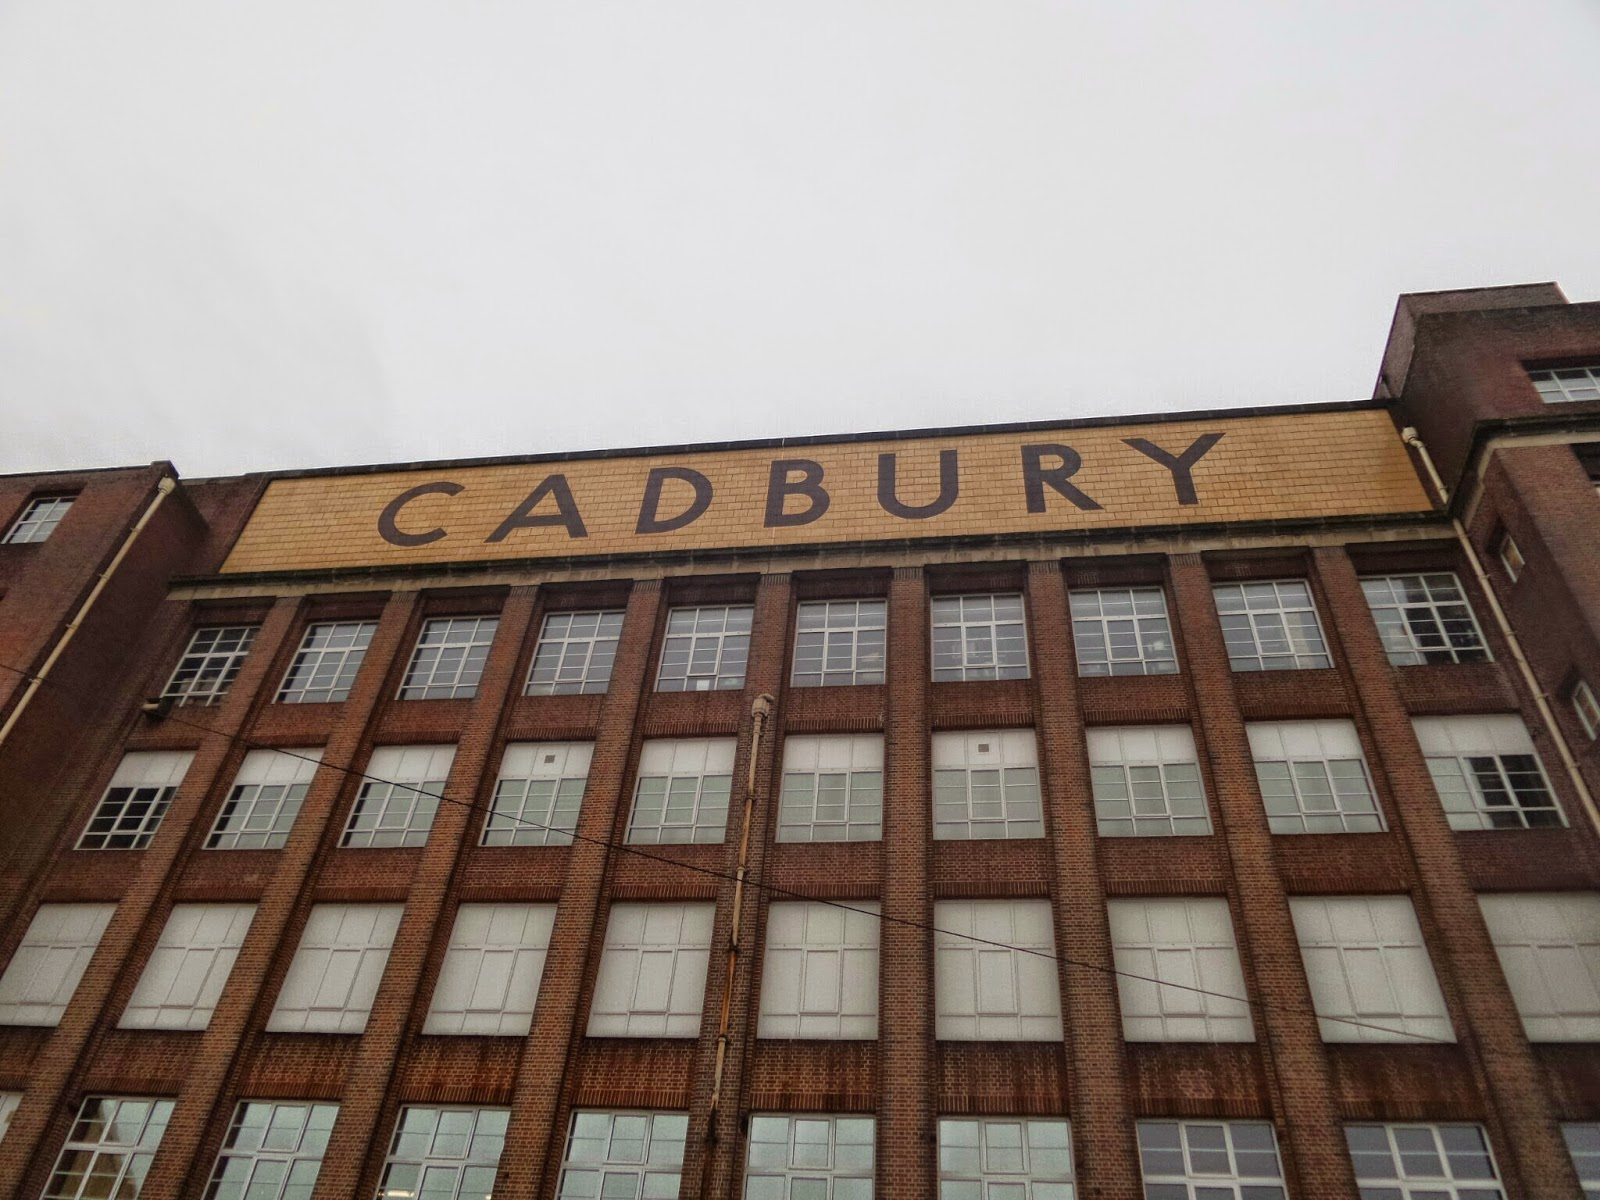 Cadbury World. If you sniff hard enough, you can smell the chocolate!